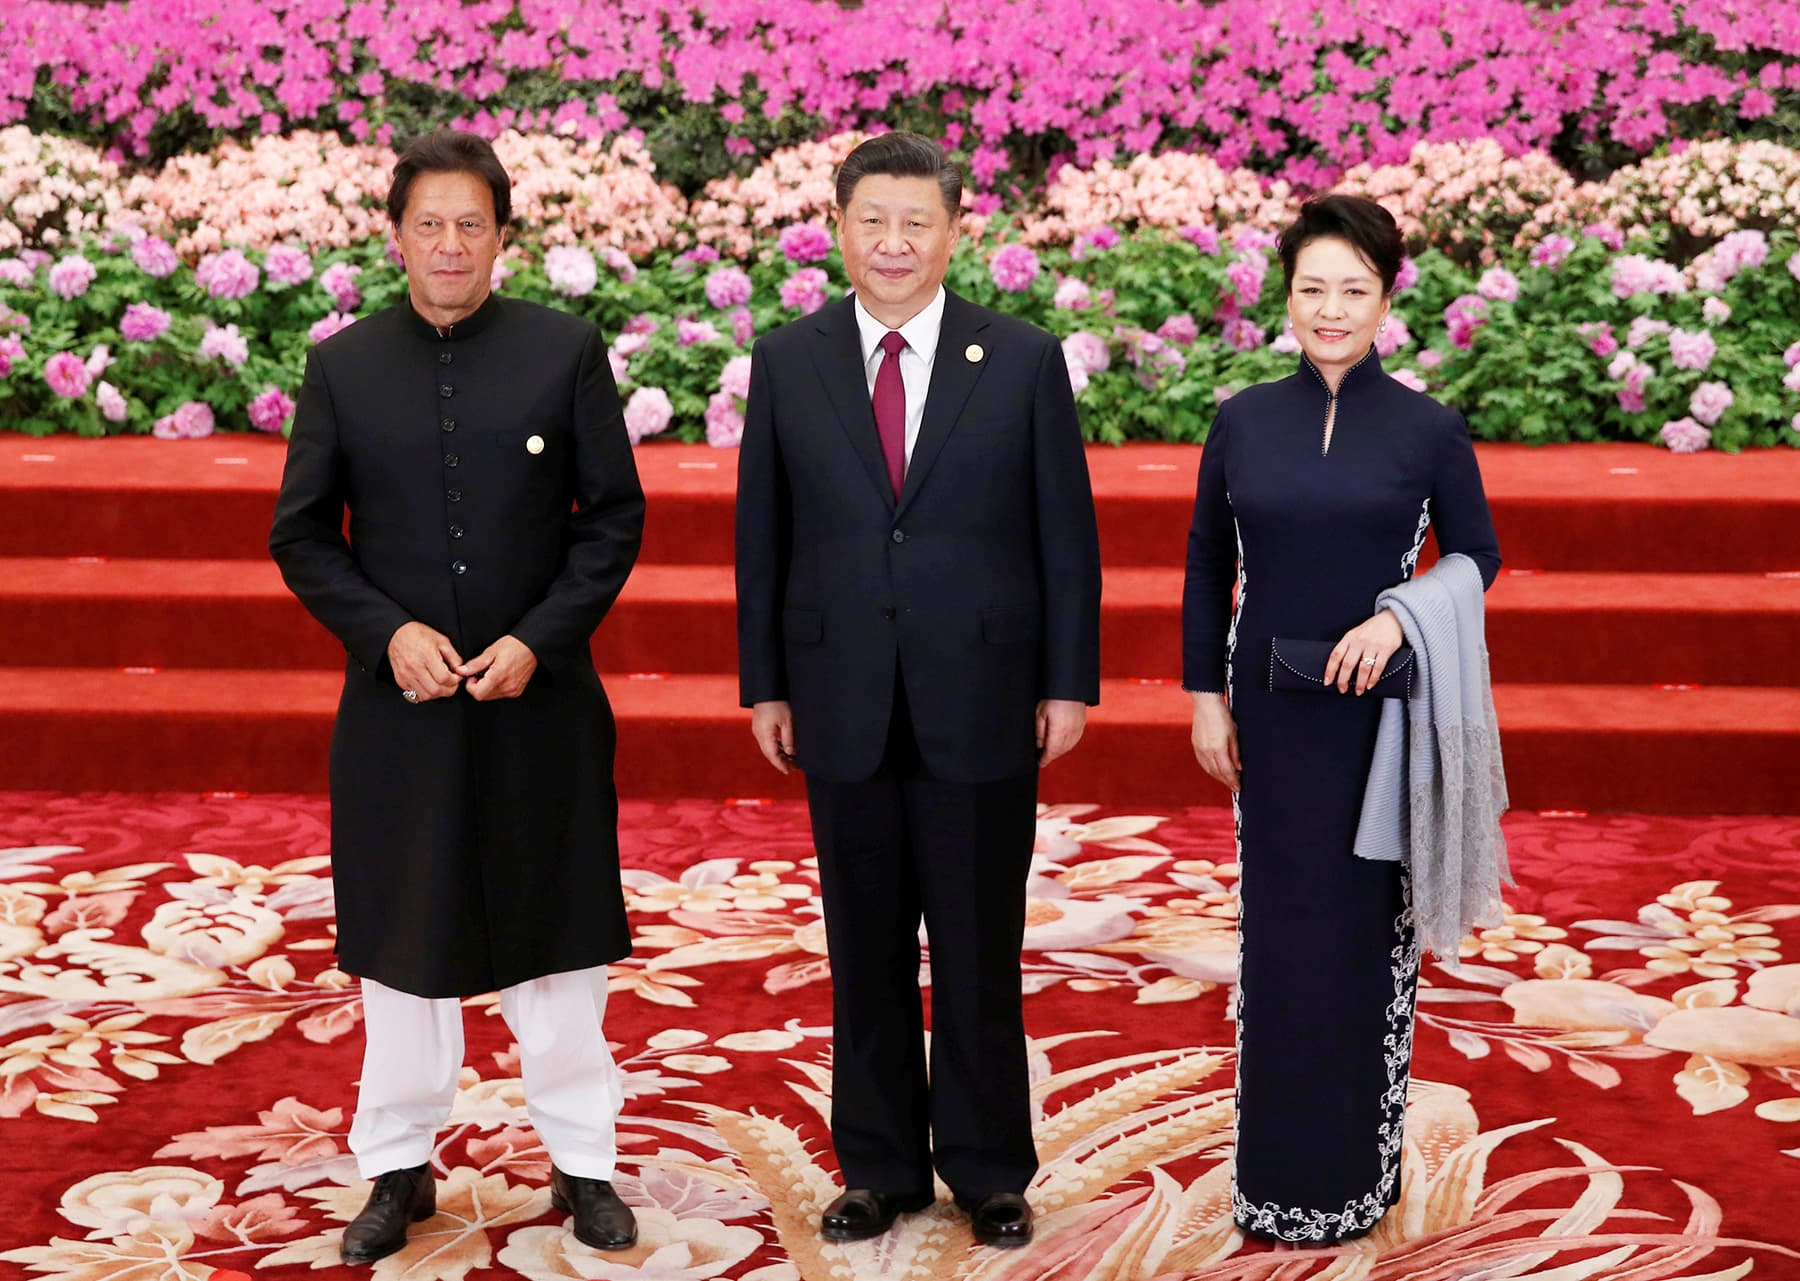 Prime Minister Imran Khan arrives to attend a welcome banquet for the Belt and Road Forum hosted by Chinese President Xi Jinping and his wife Peng Liyuan at the Great Hall of the People in Beijing. — Reuters